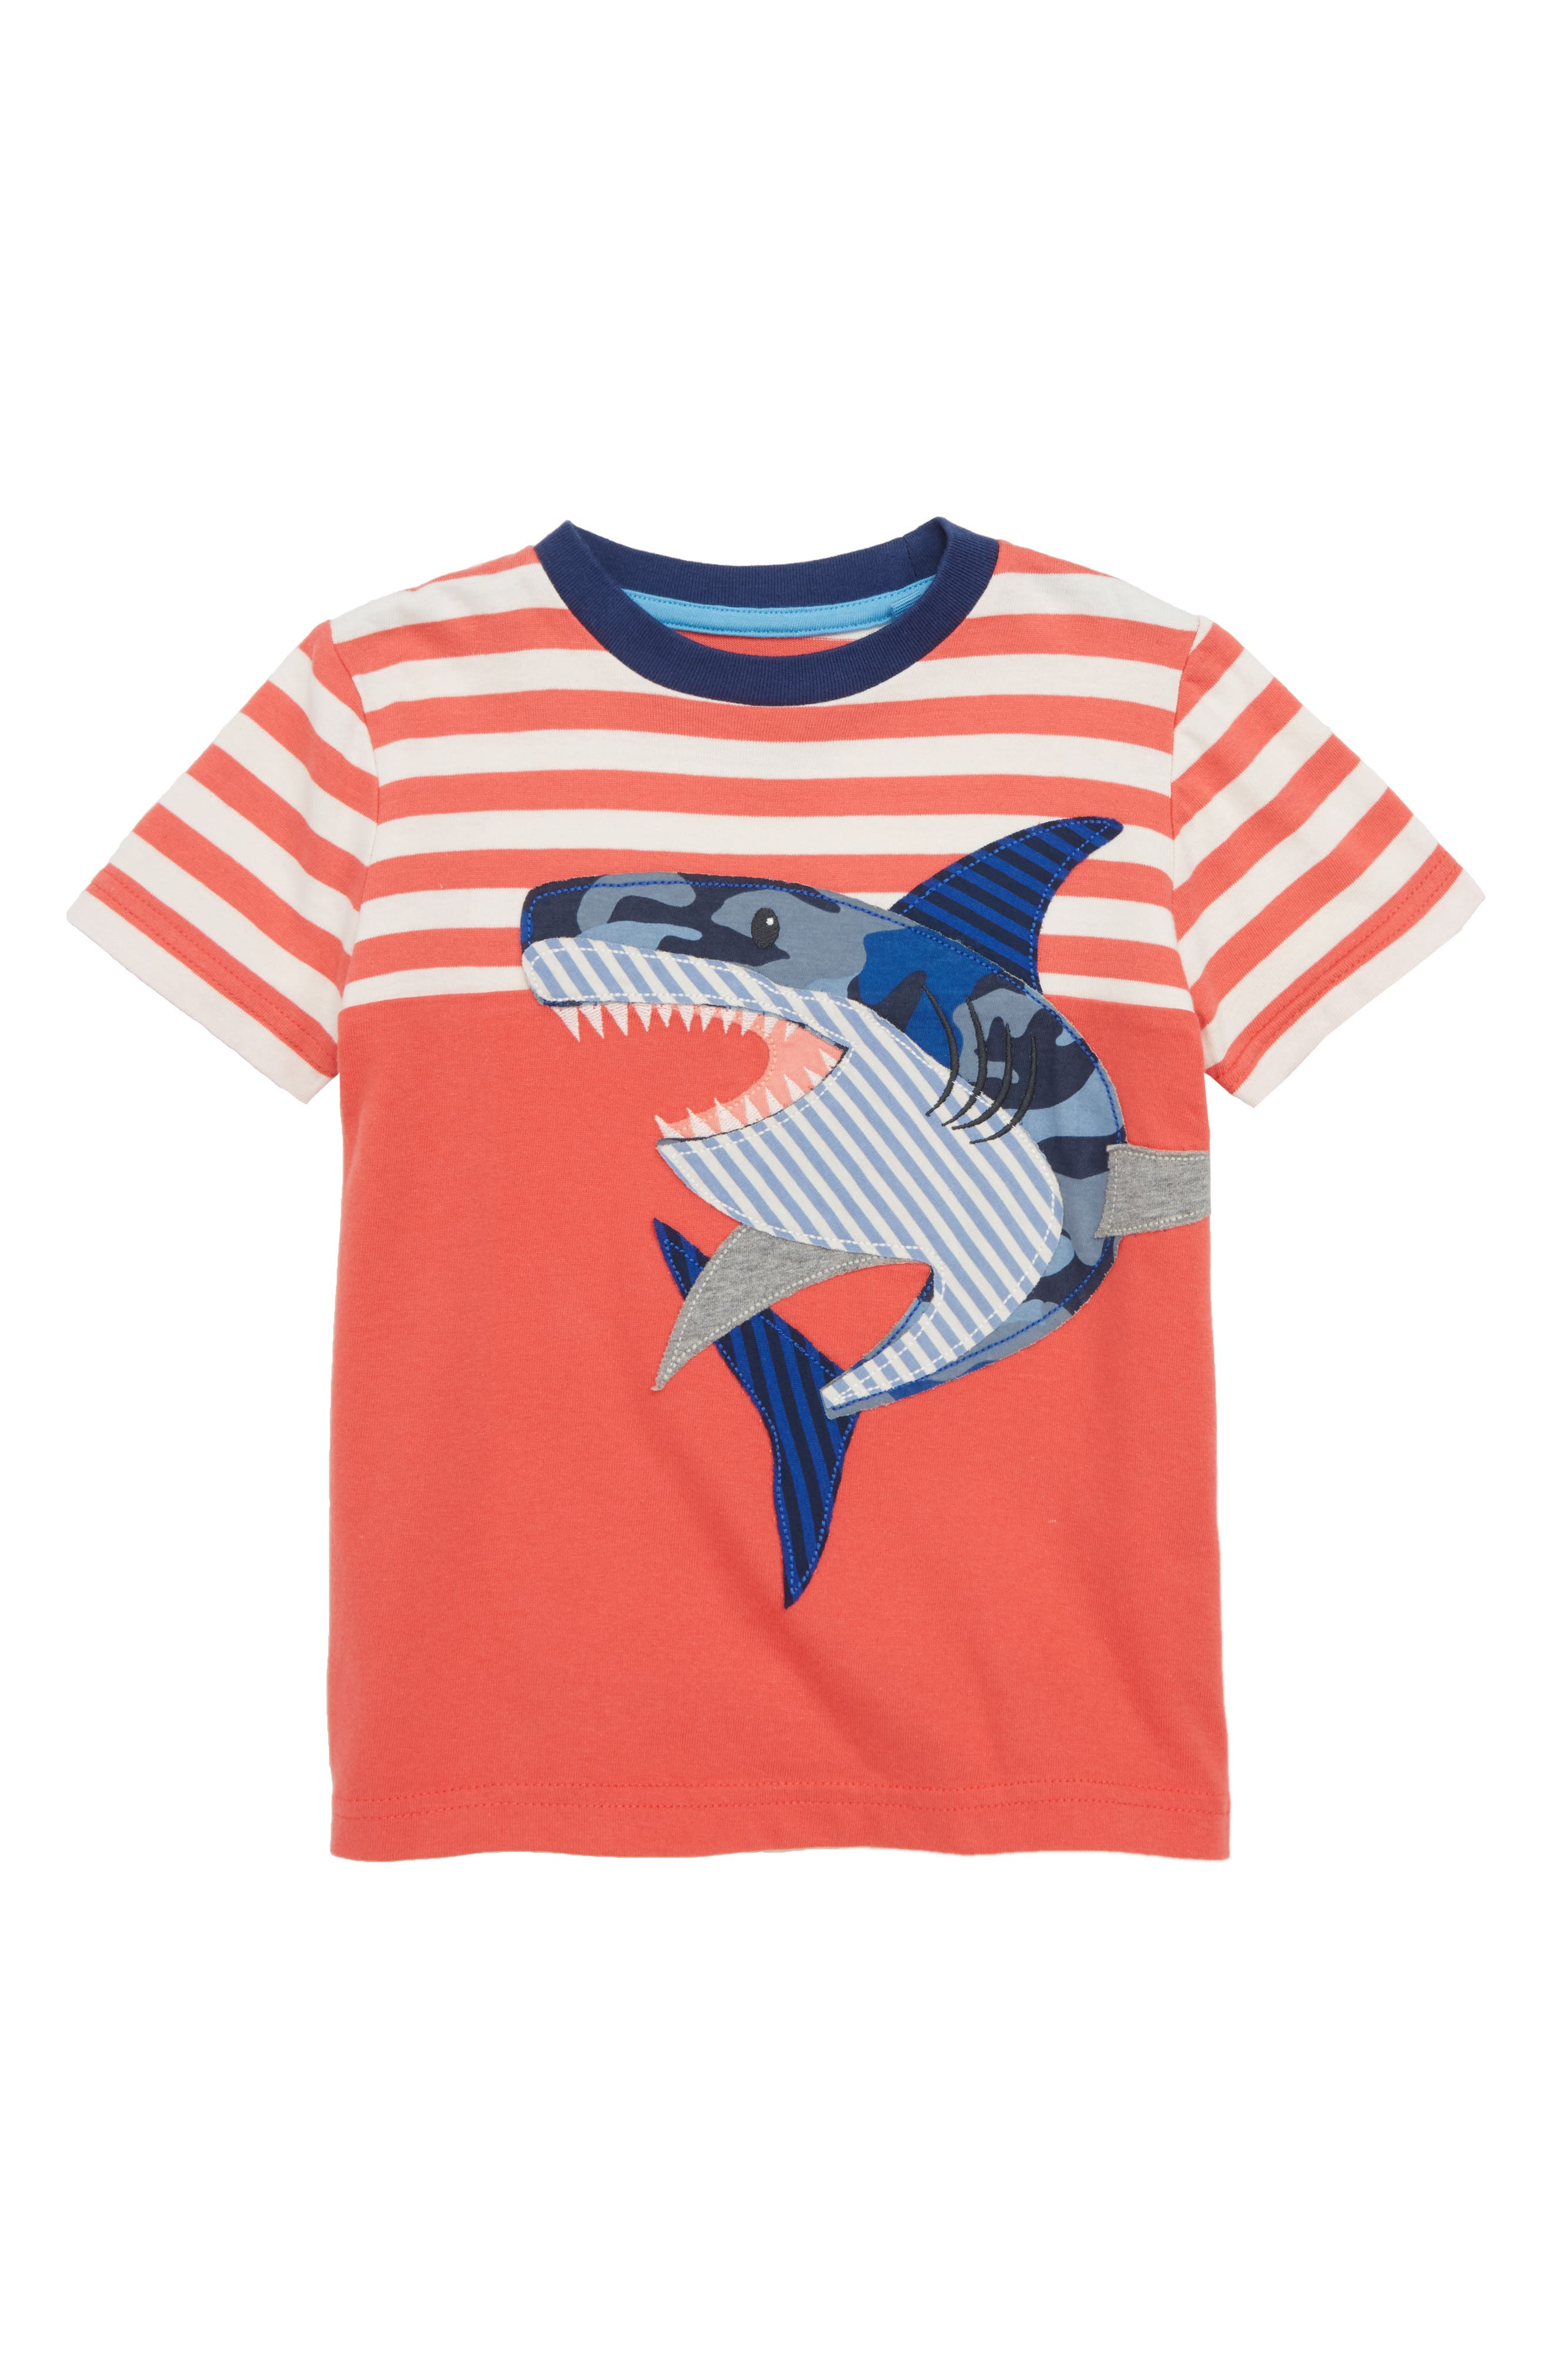 Shark Appliqué T-Shirt,                             Main thumbnail 1, color,                             614